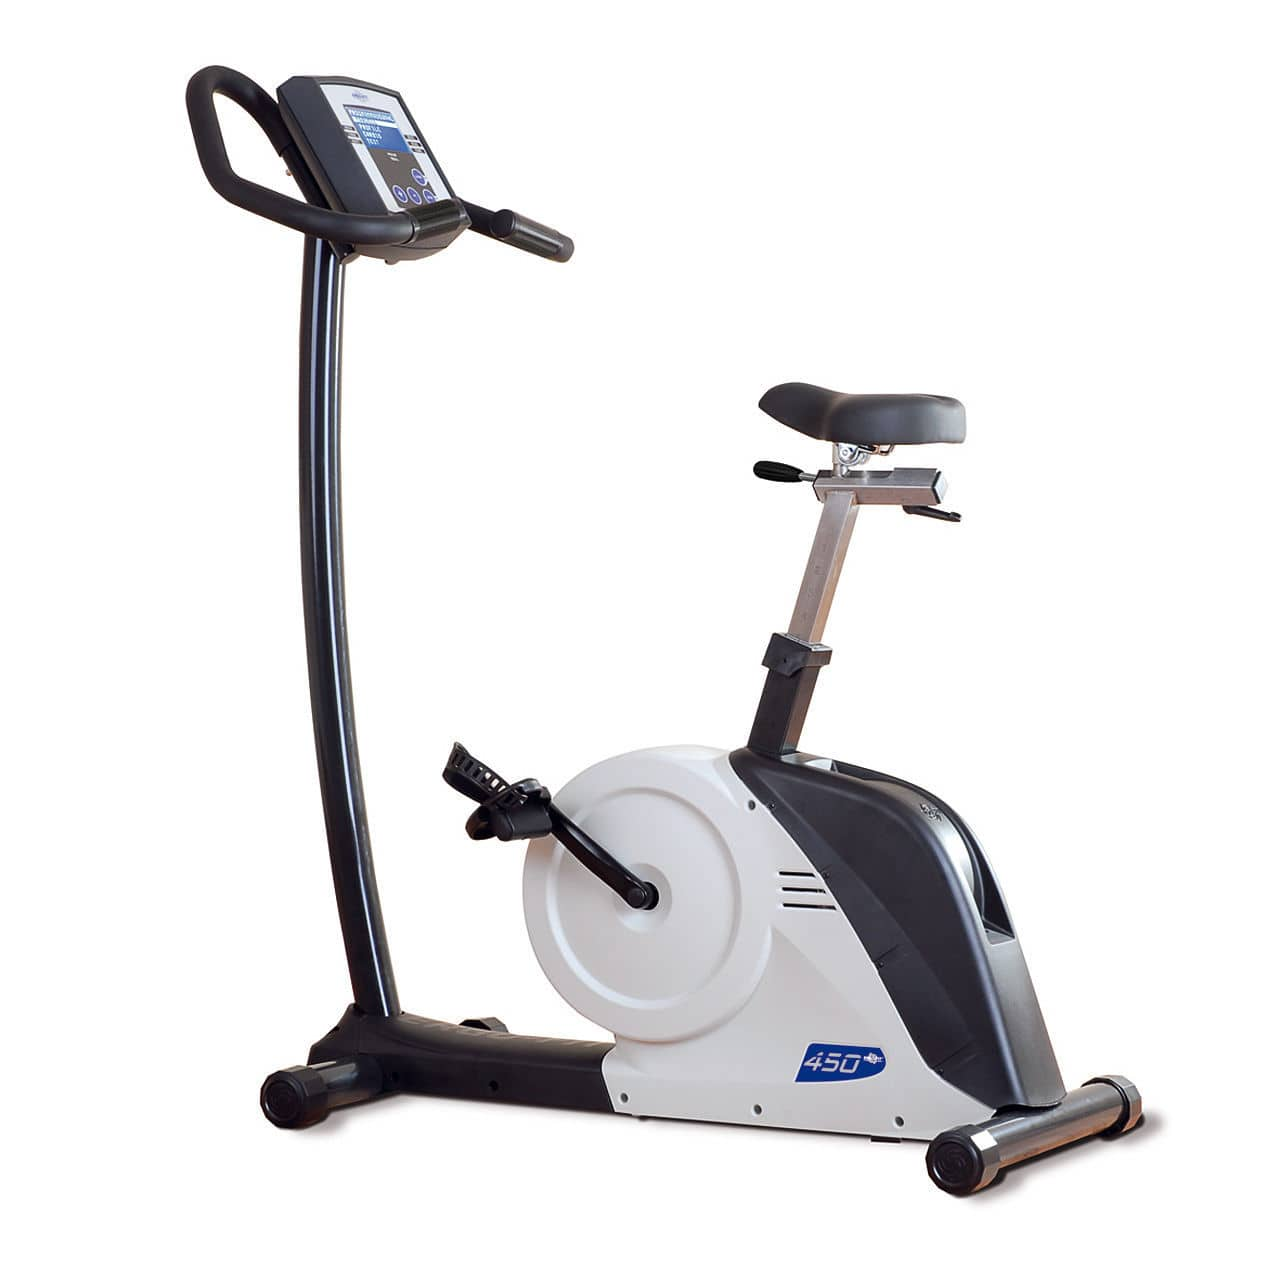 Ergometer exercise bike - CYCLE 400/500 HOME - ERGO-FIT